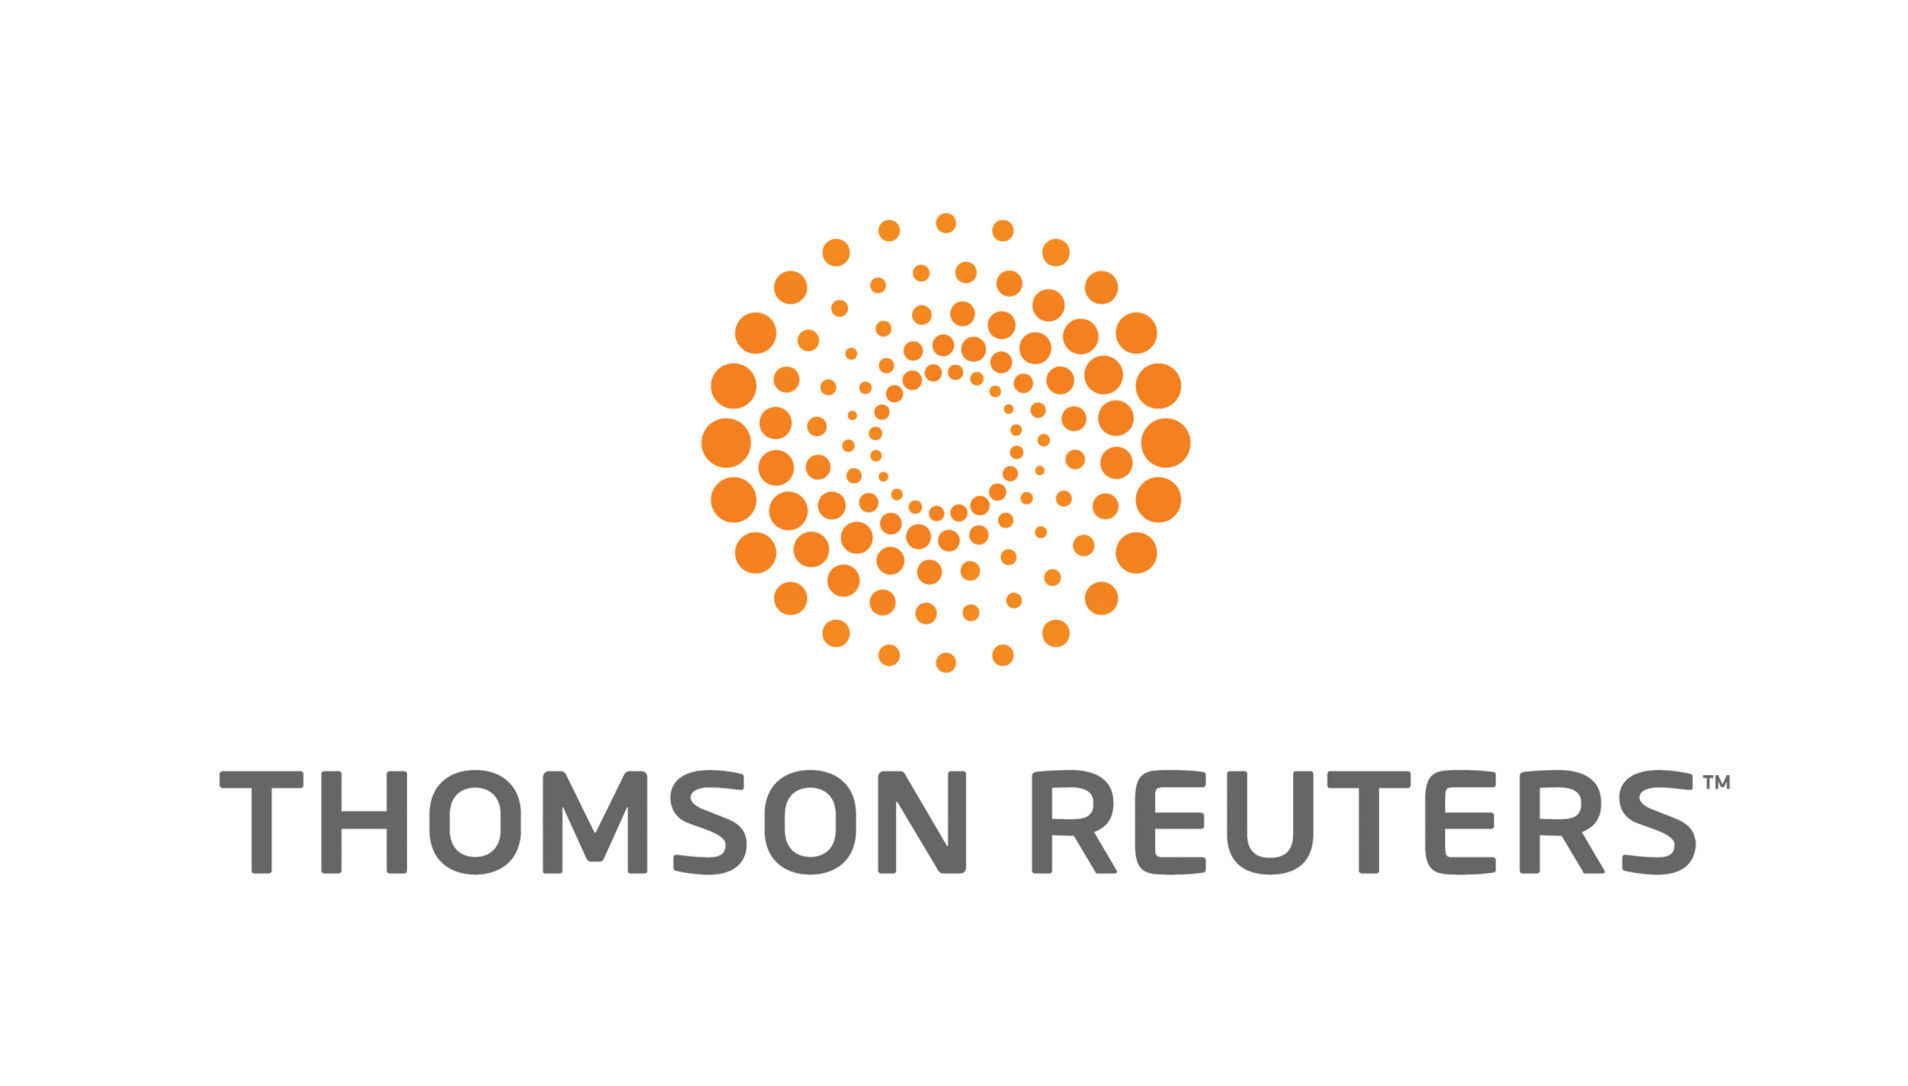 Thomson Reuters to cut 2000 jobs, spares newsroom